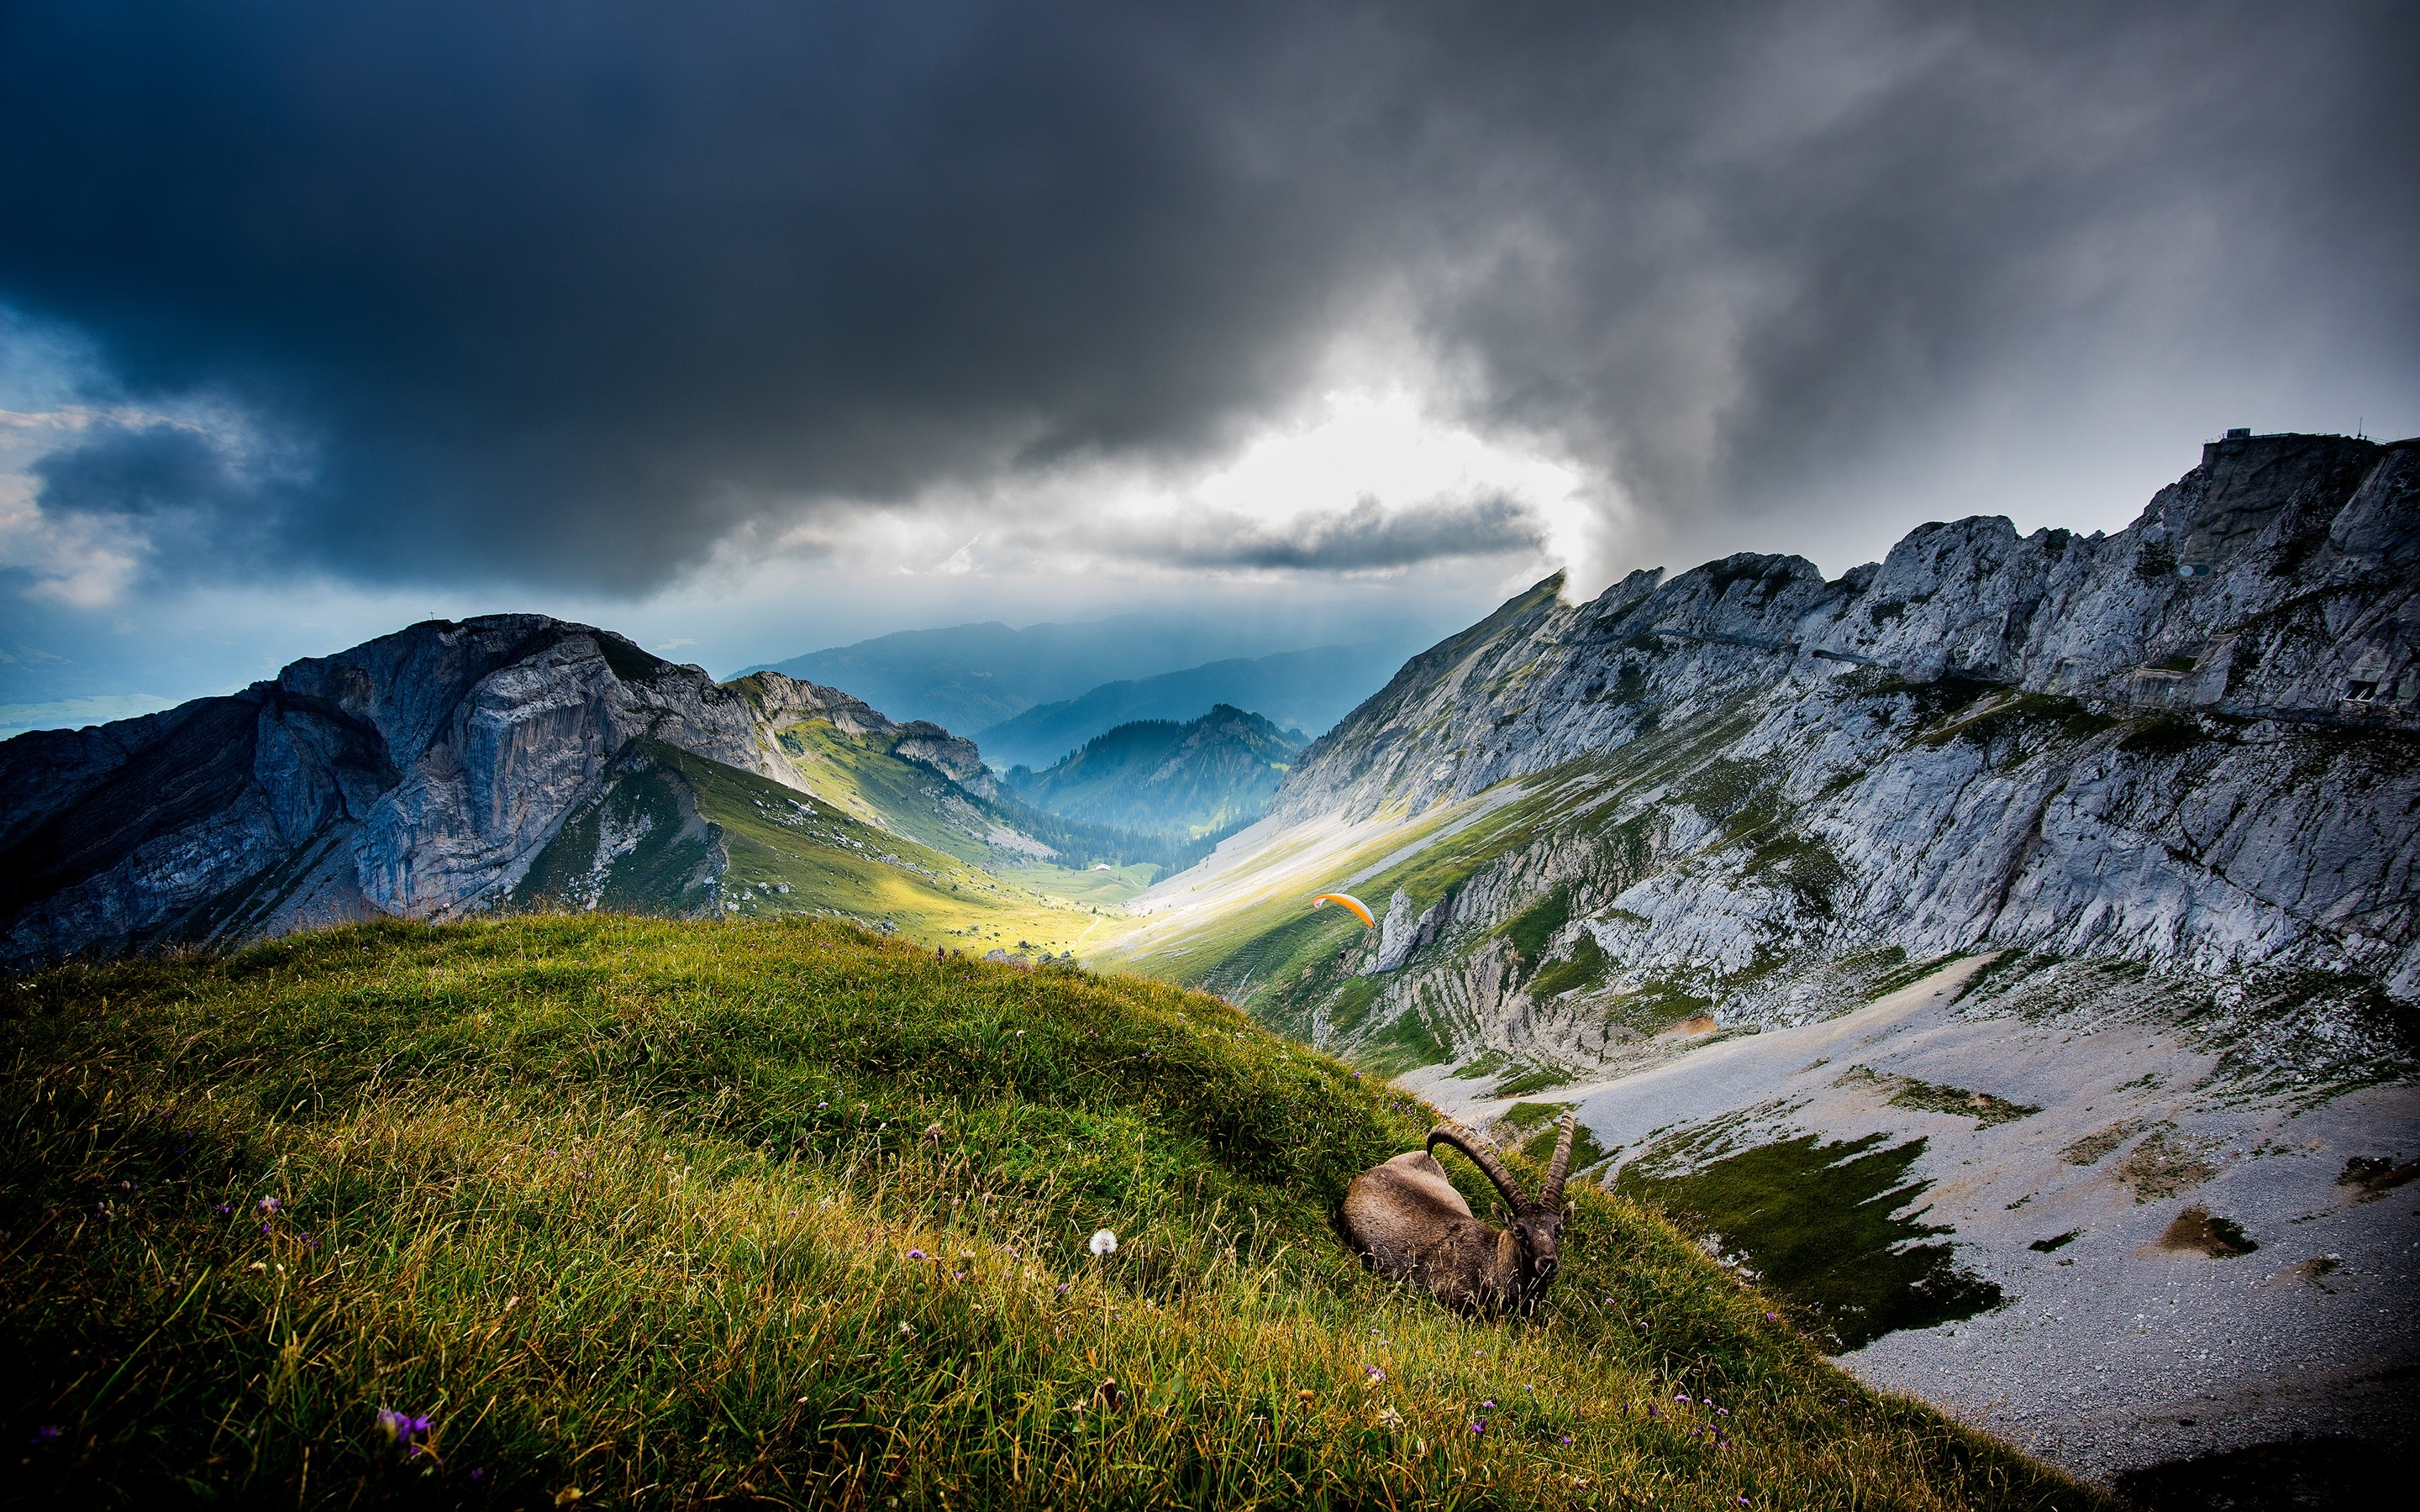 Wallpaper Mount Pilatus in Switzerland